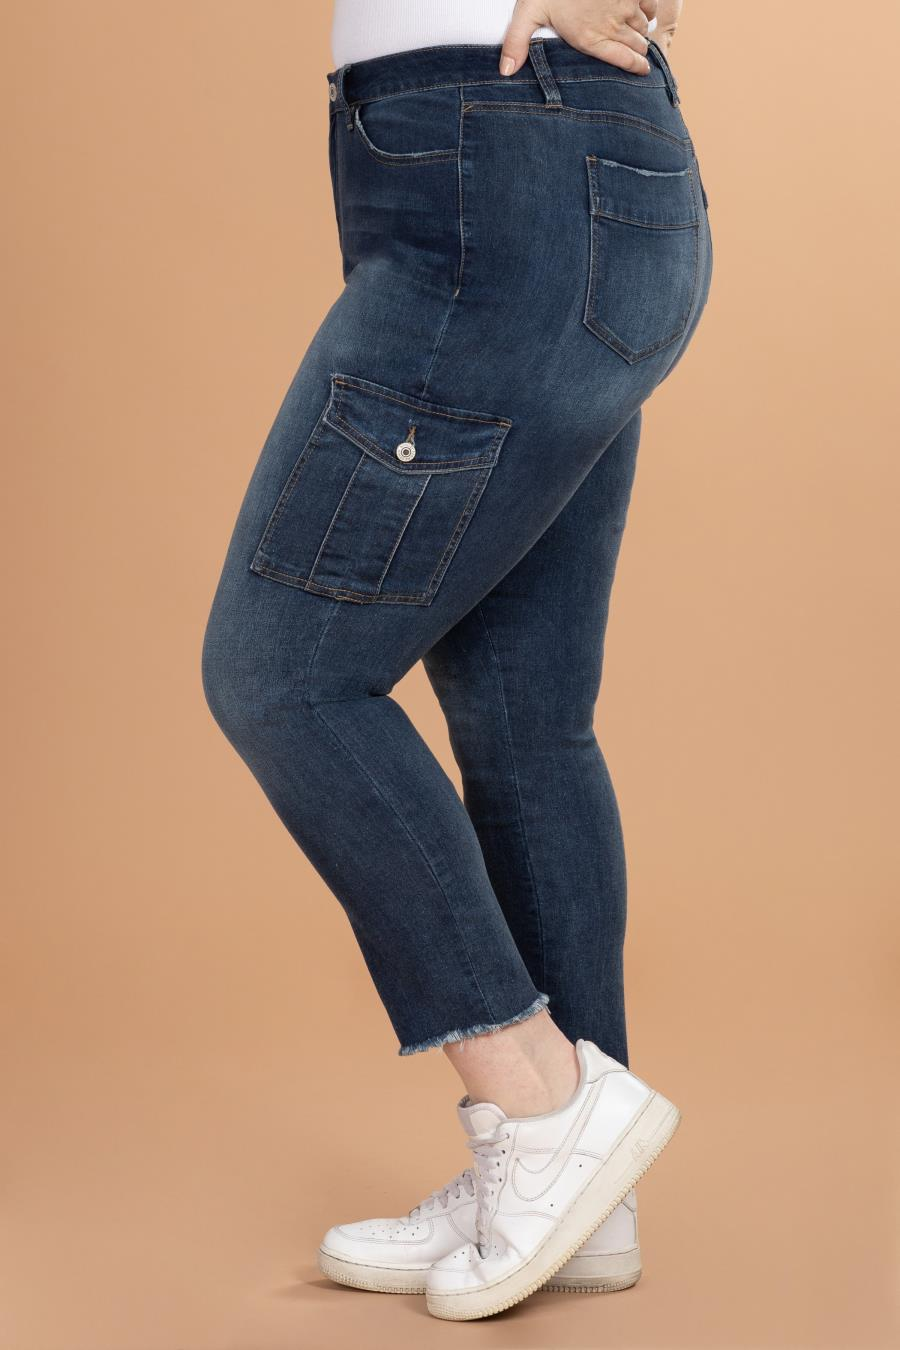 Women Plus Size Fashion First Mid-Rise Ankle Cargo Pant With Frayed Hem